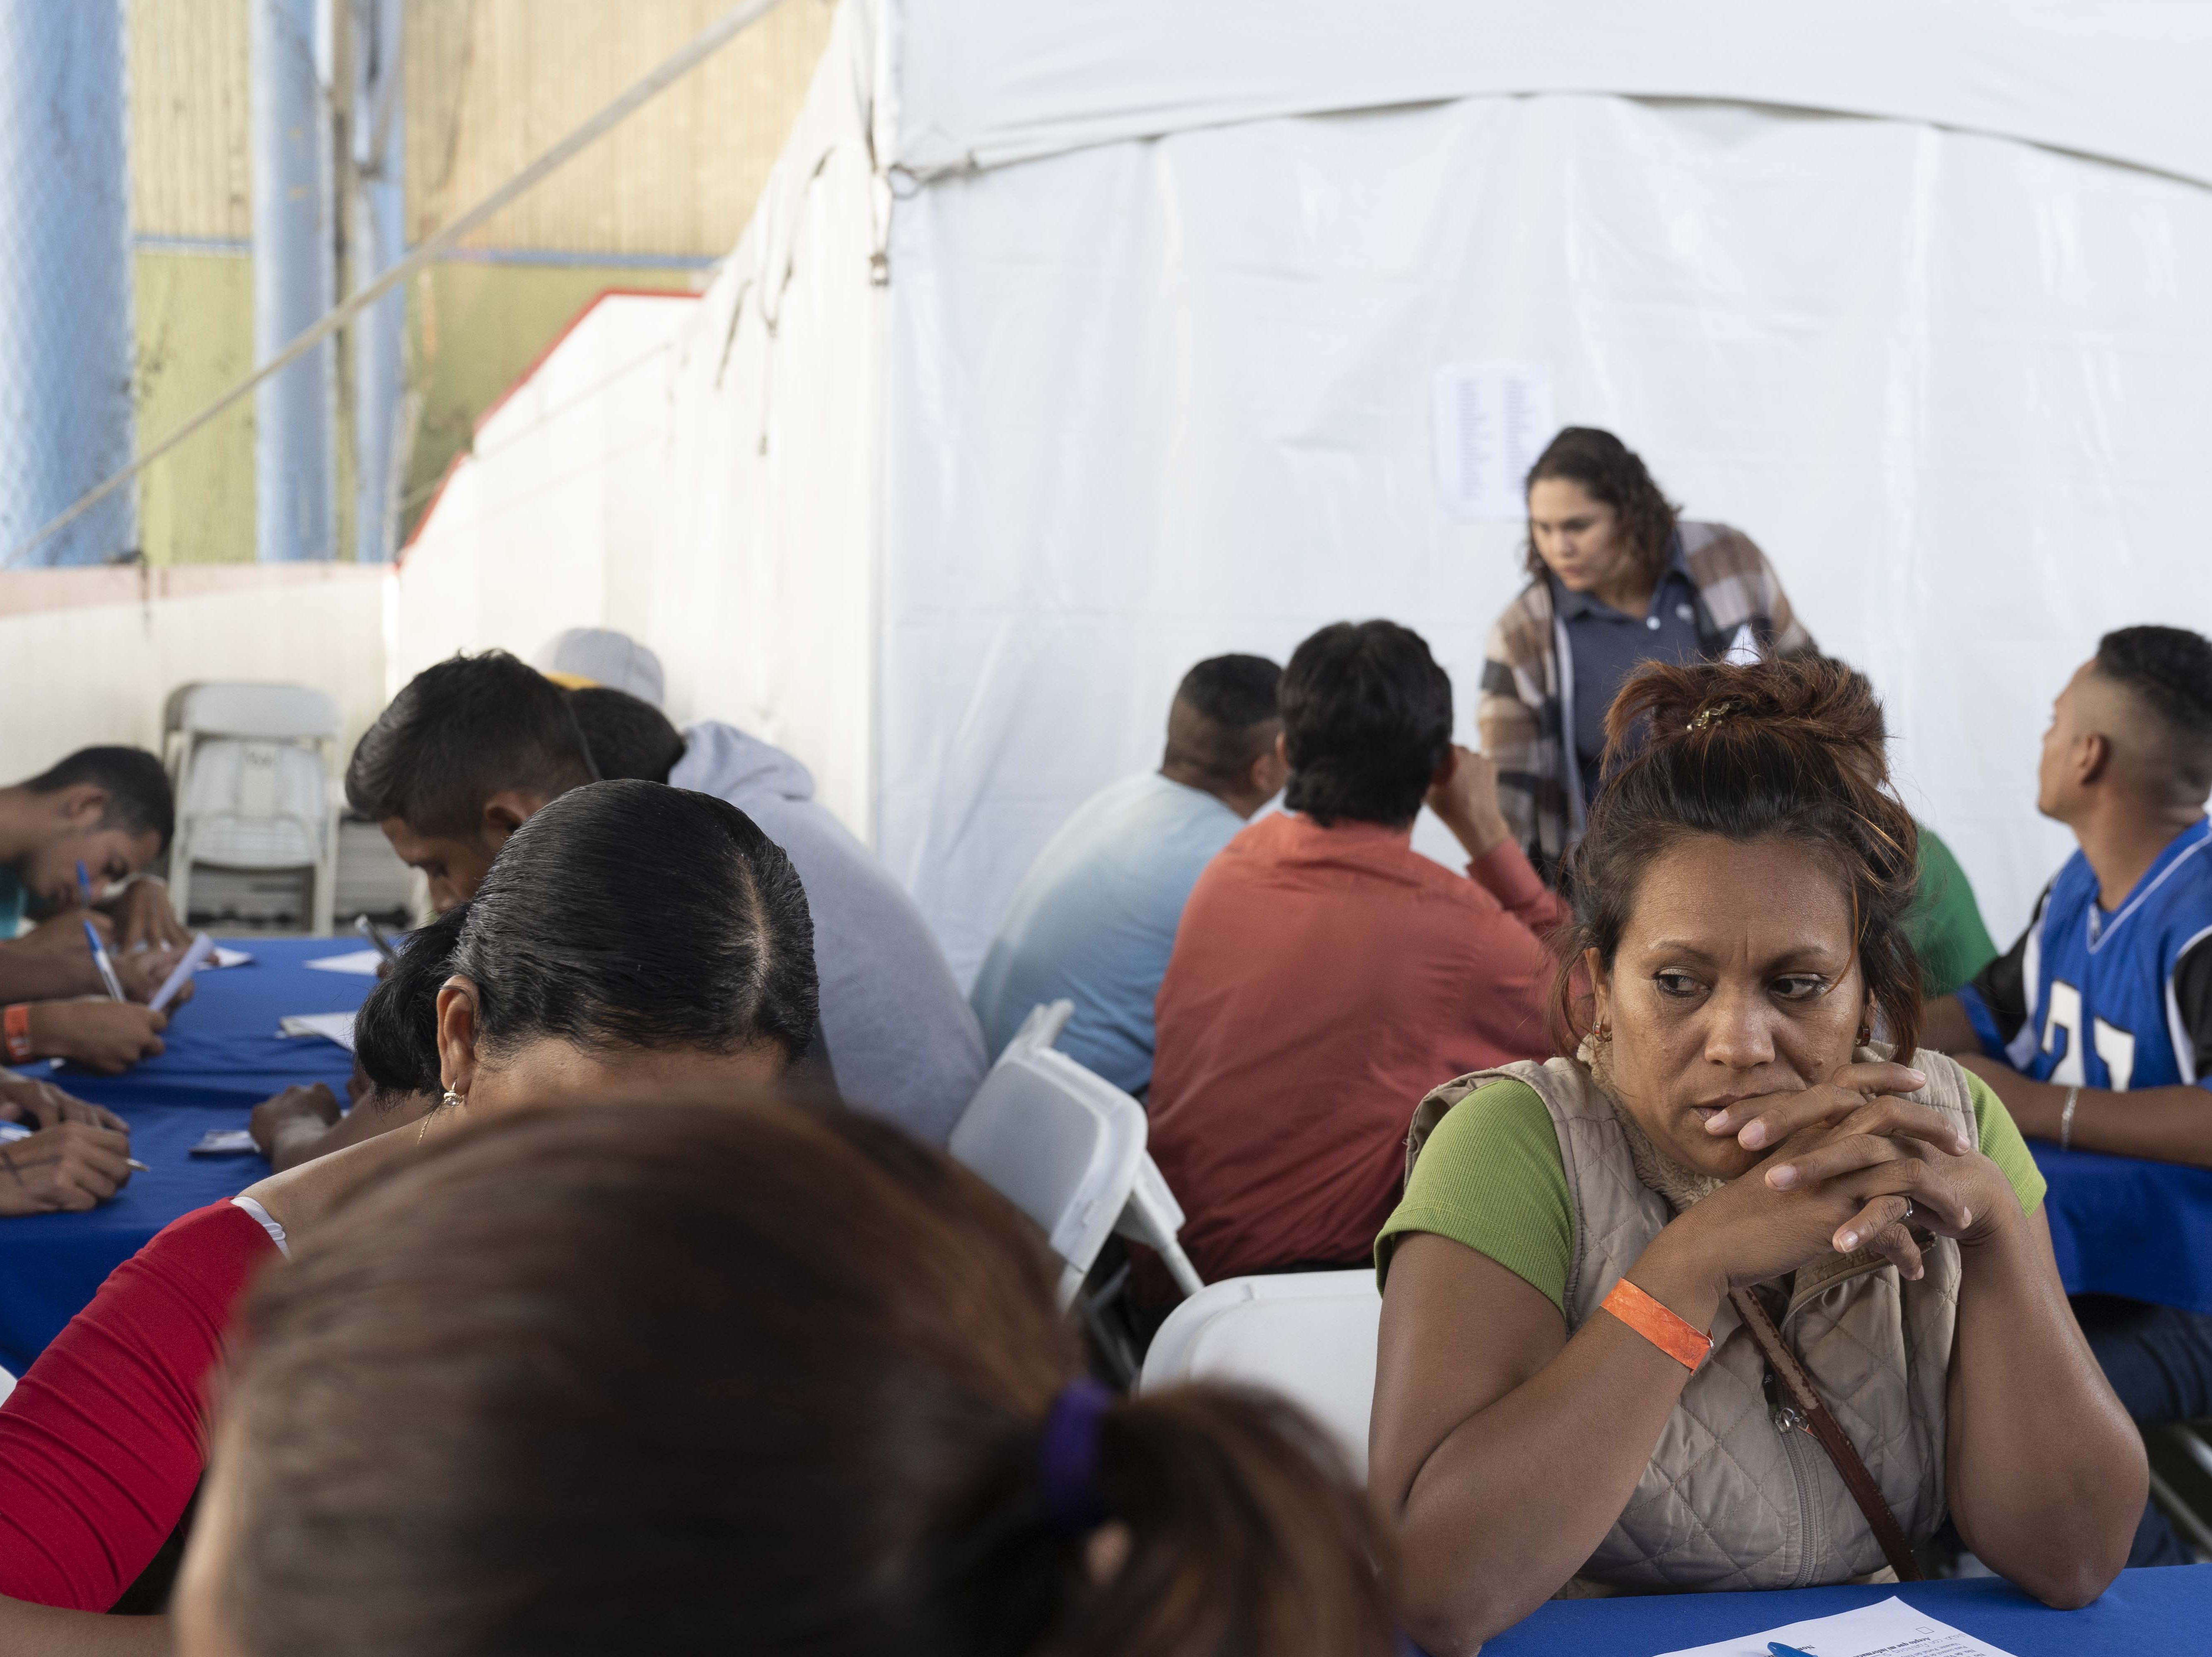 11/19/18 12:21:34 PM -- Tijuana, Mexico. Maritza Lara, a migrant from Honduras, jumped at the chance to find a job in Mexico in order to move out from the shelter. Government and business leaders kicked off on Monday a month-long job fair aimed at helping out stranded migrants that had traveled up here in a caravan, and possible getting them to stay in Mexico, rather than pursue asylum claims in the United States.  Photo by Nick Oza, Gannett